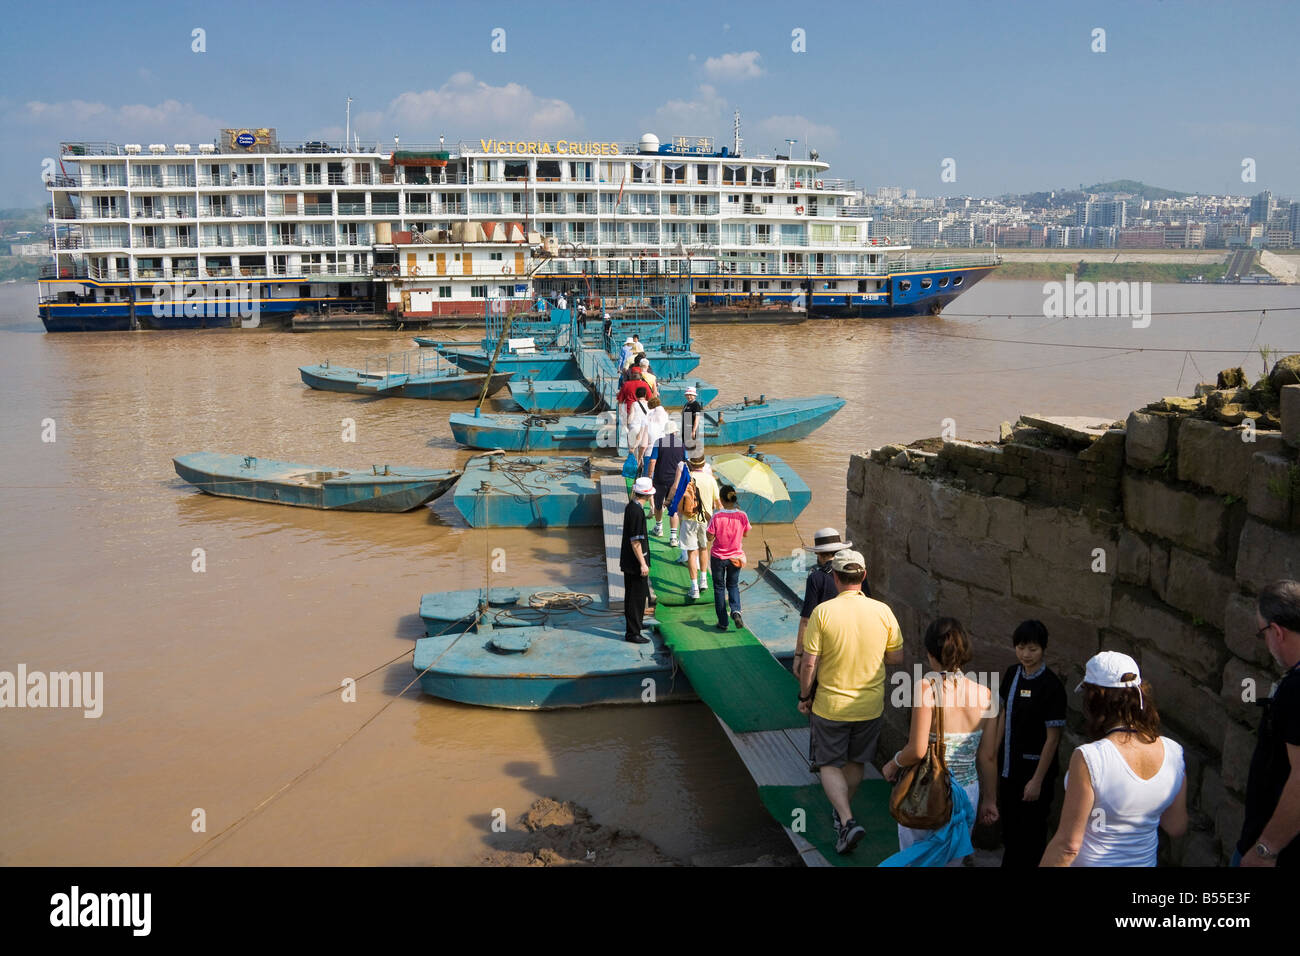 Western tourists boarding Victoria Cruises ship Bei Dou moored on the Yangzi River at Fengdu Ghost City China JMH3362 - Stock Image